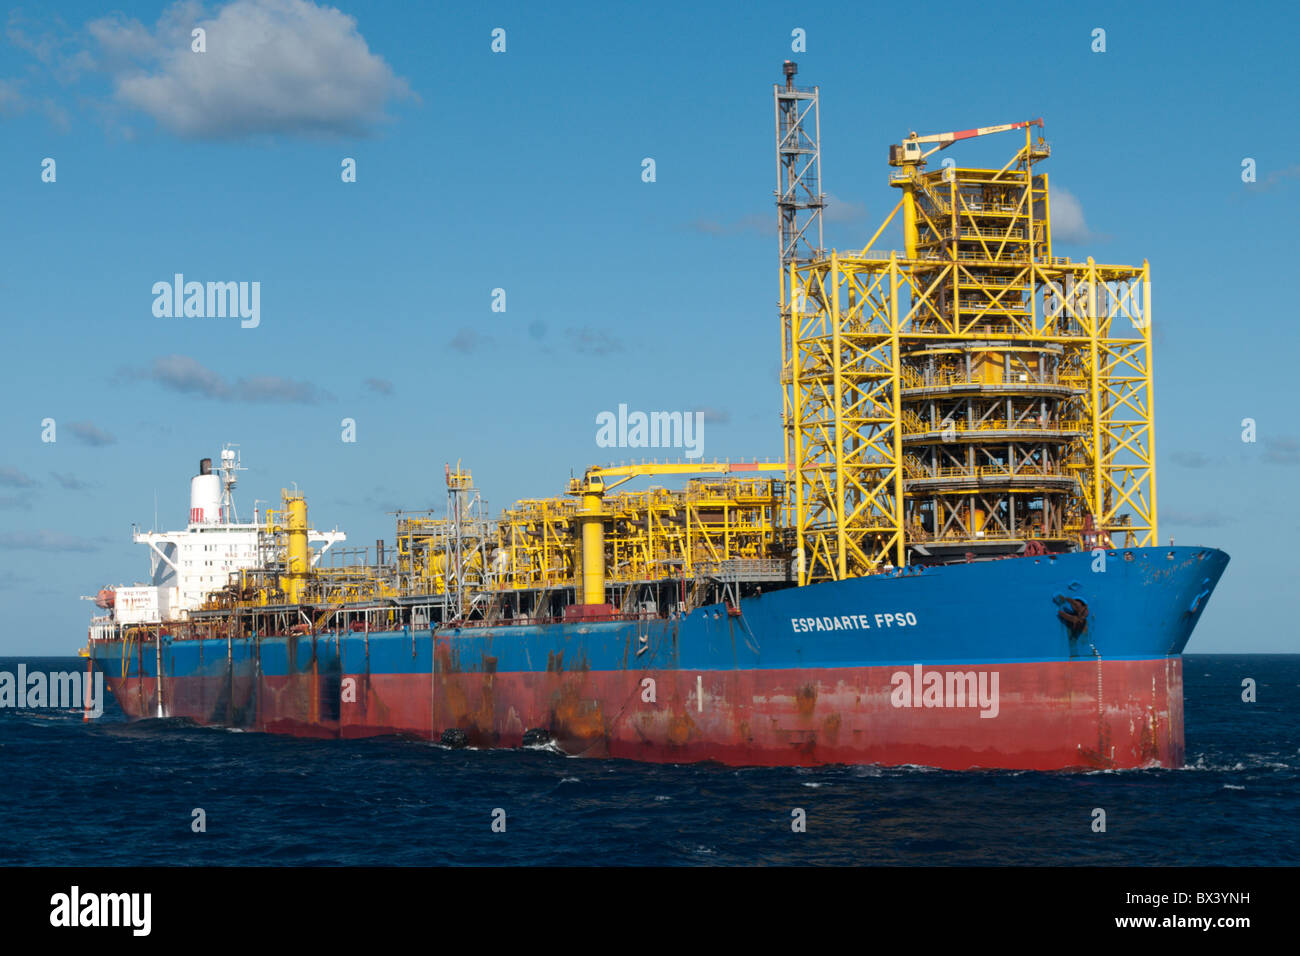 FPSO Espadarte, oil production rig from brazilian company Petrobras